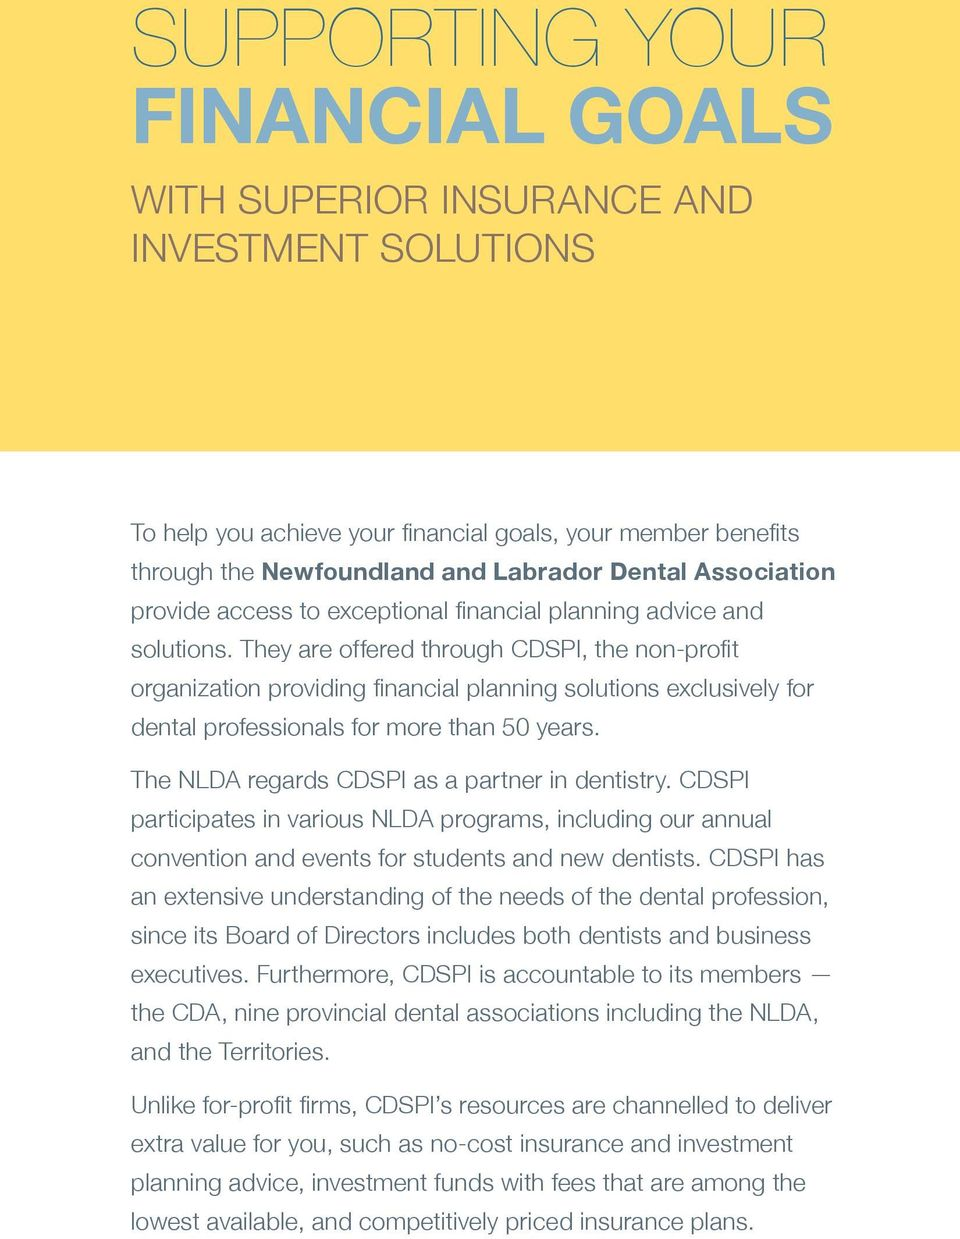 They are offered through CDSPI, the non-profit organization providing financial planning solutions exclusively for dental professionals for more than 50 years.